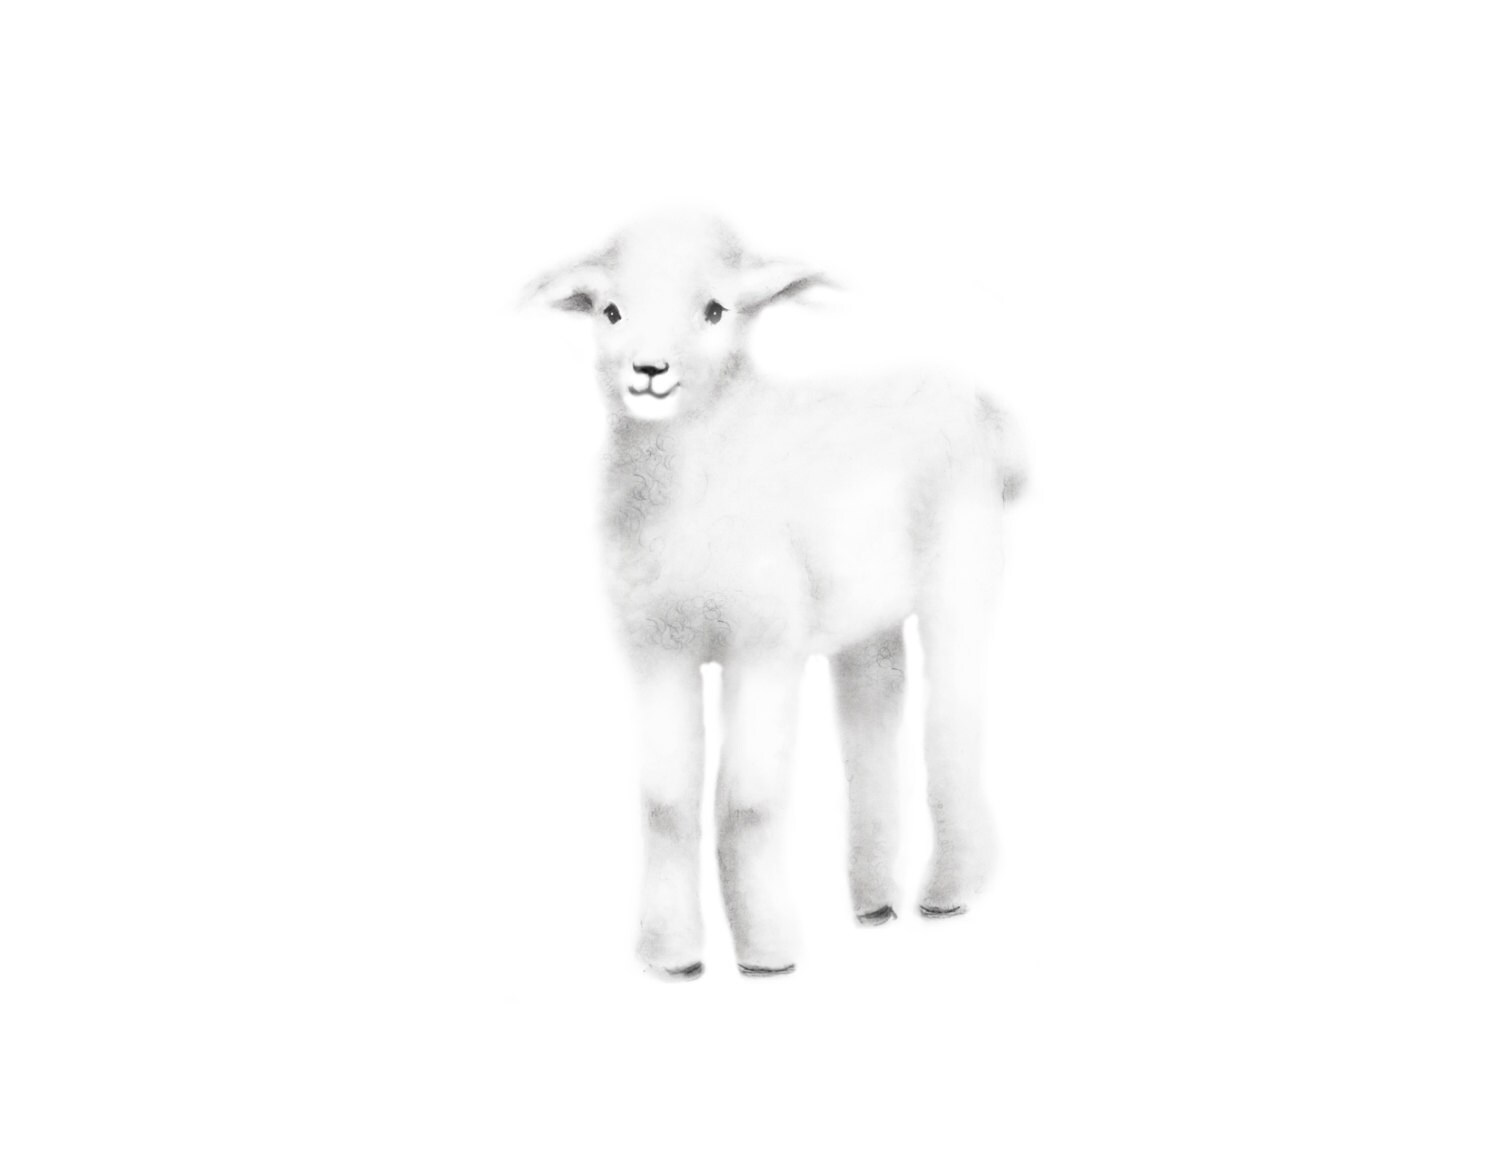 Baby Lamb Drawing Lamb Nursery Art Baby Lamb Pencil Drawing Nursery Decor